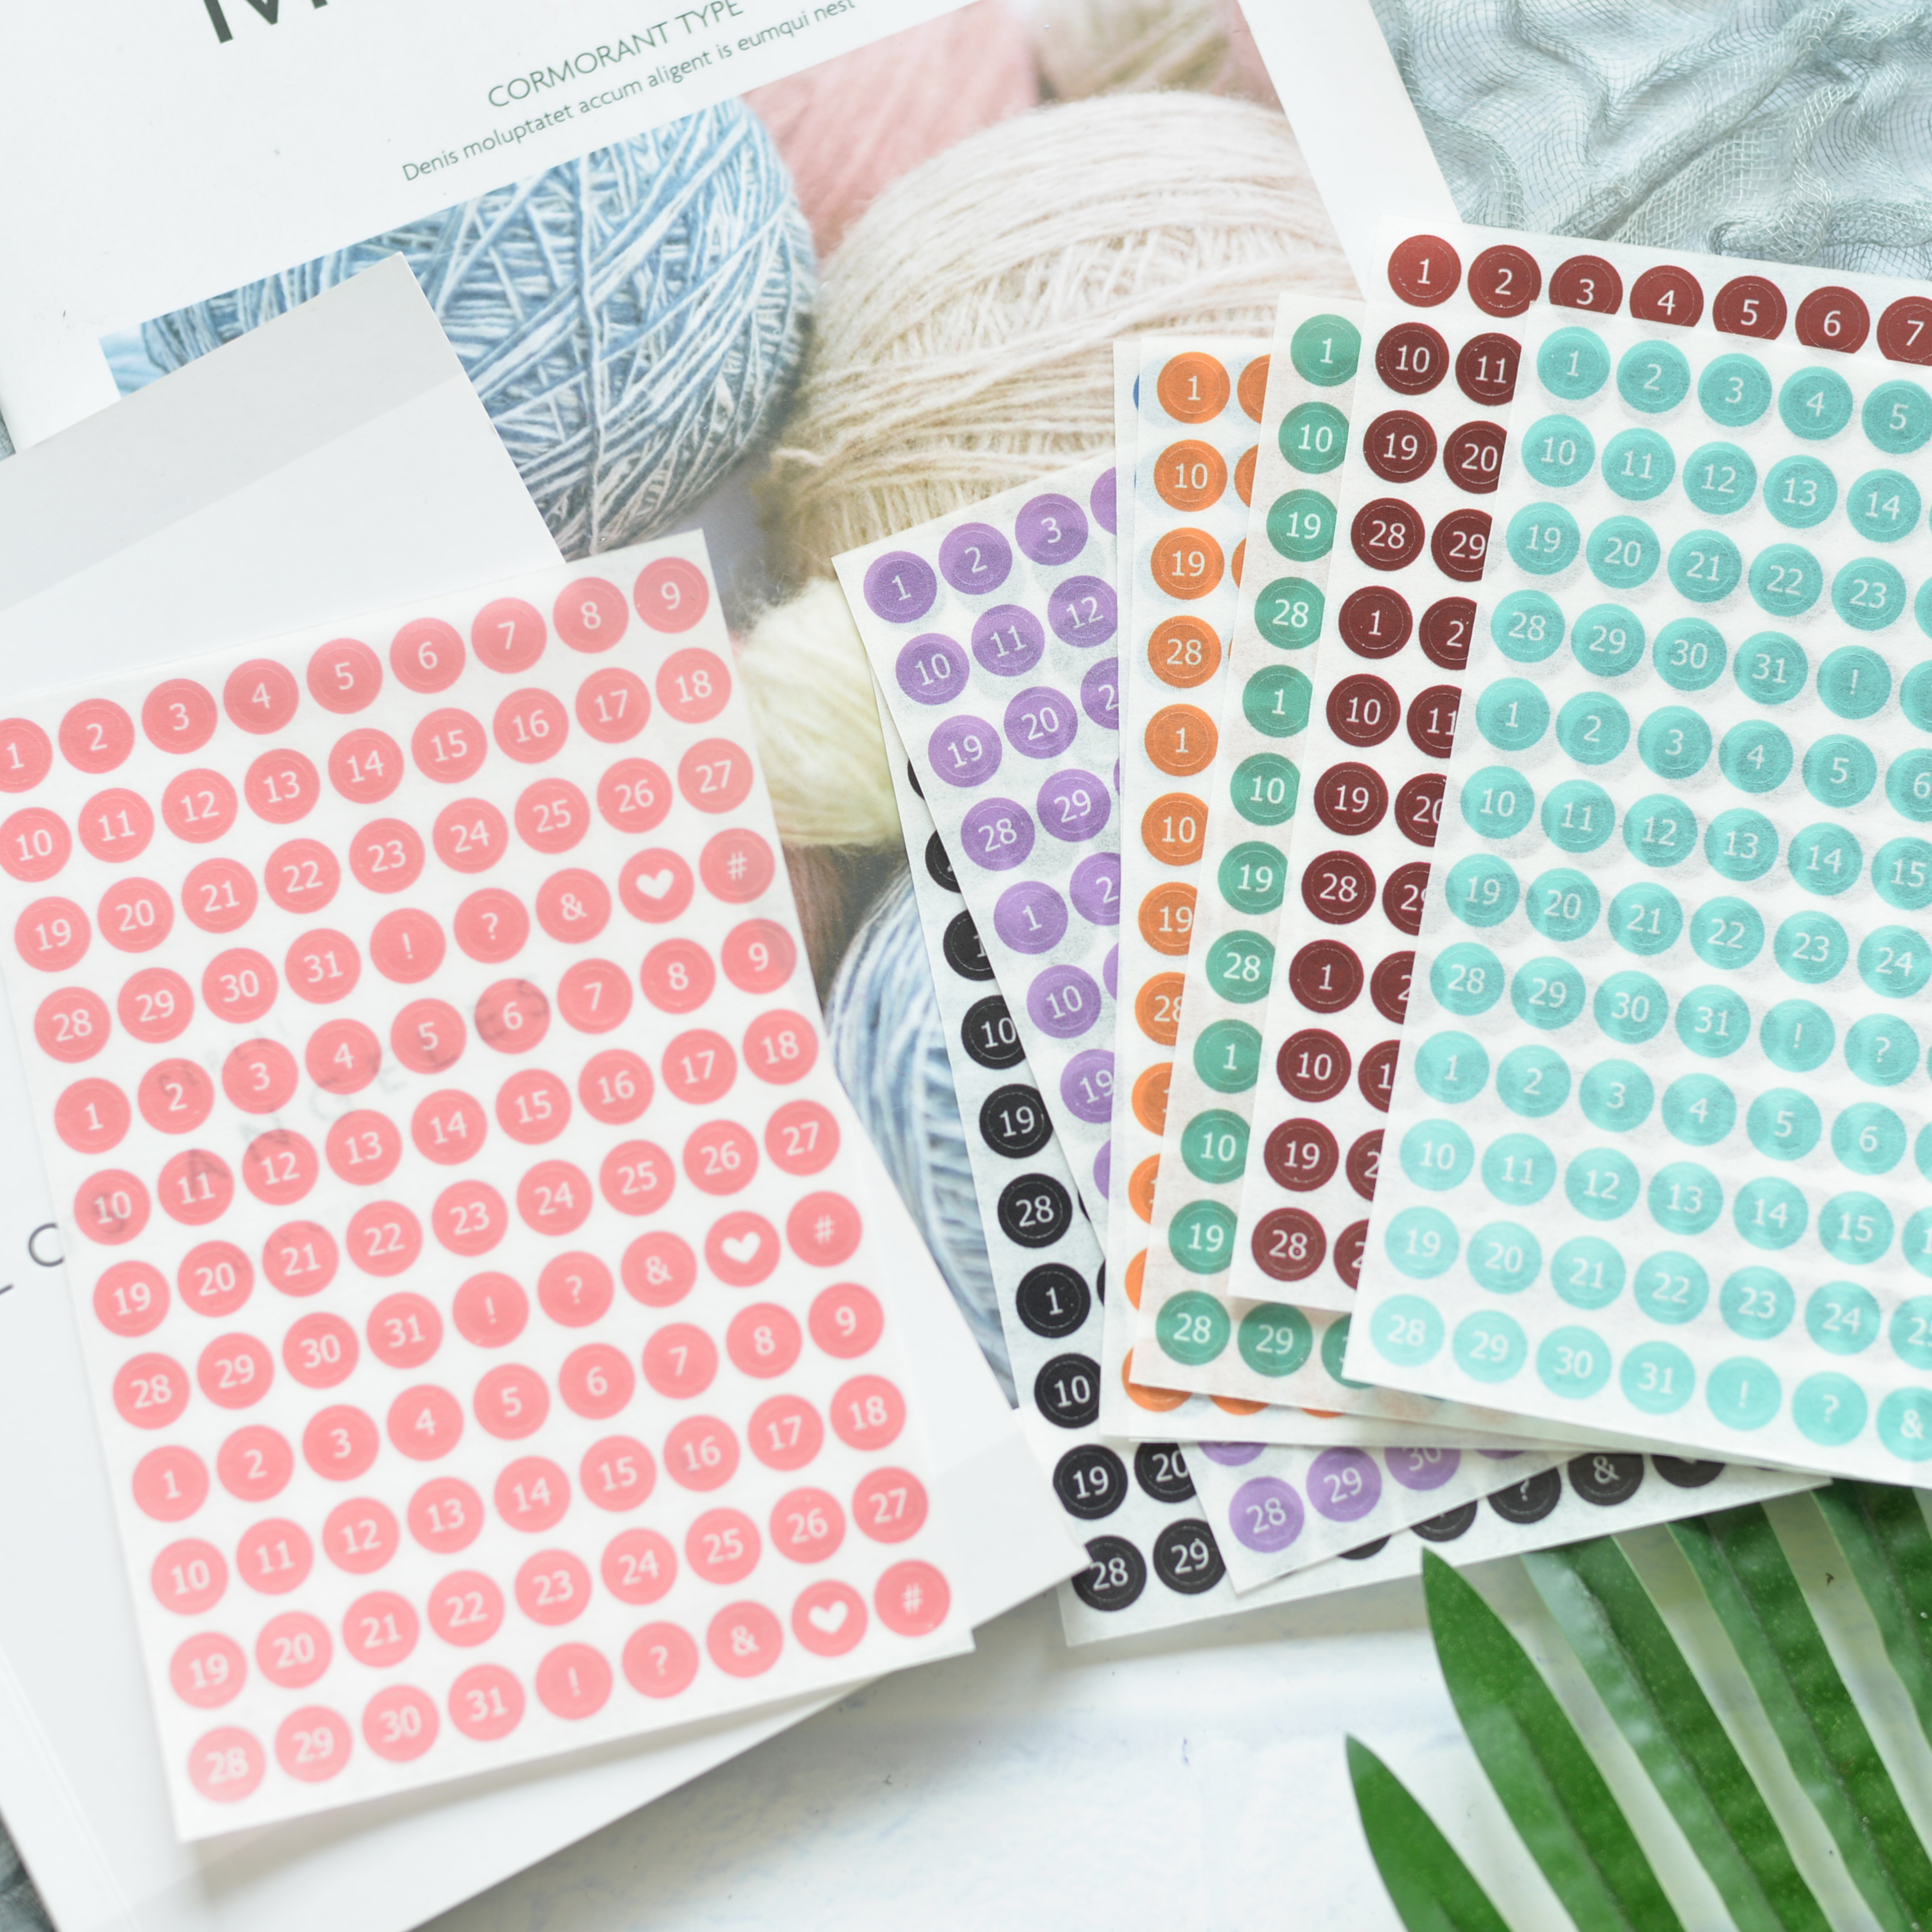 8pcs-new-colorful-circle-digital-cute-number-daily-week-plan-basic-decorative-stickers-diy-scrapbooking-planner-diary-stickers